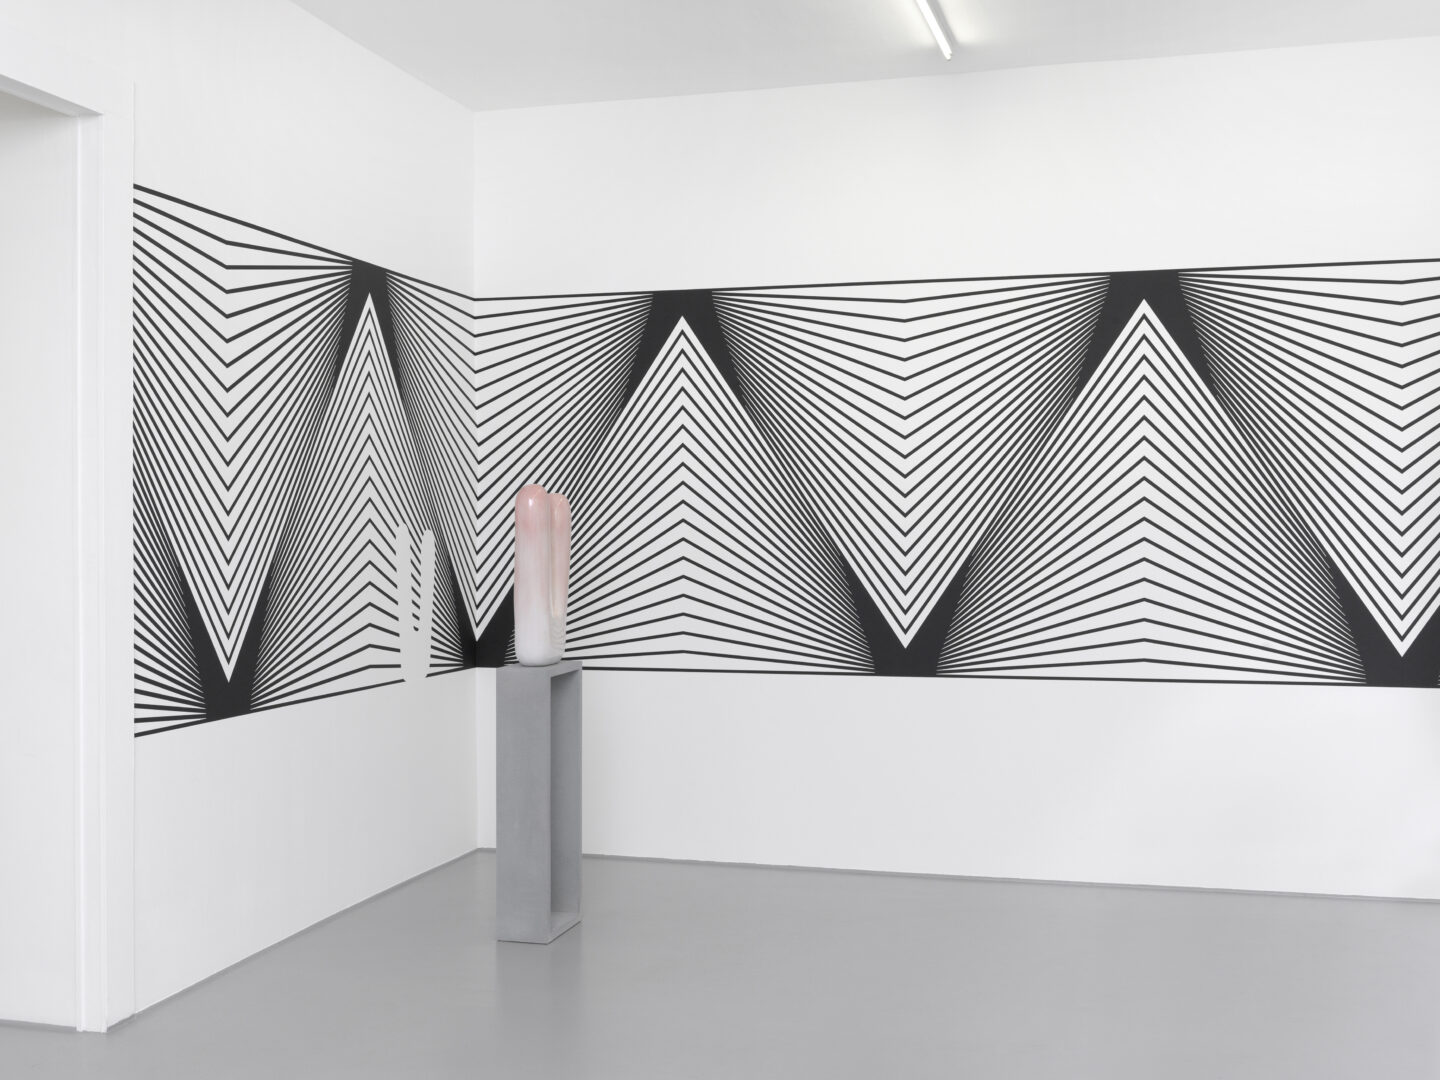 Exhibition View Claudia Comte Soloshow «Bunnies & Zig Zag» at Galerie Joy de Rouvre, Geneva / Photo: Annik Wetter / Courtesy: the artist and König Galerie, Berlin